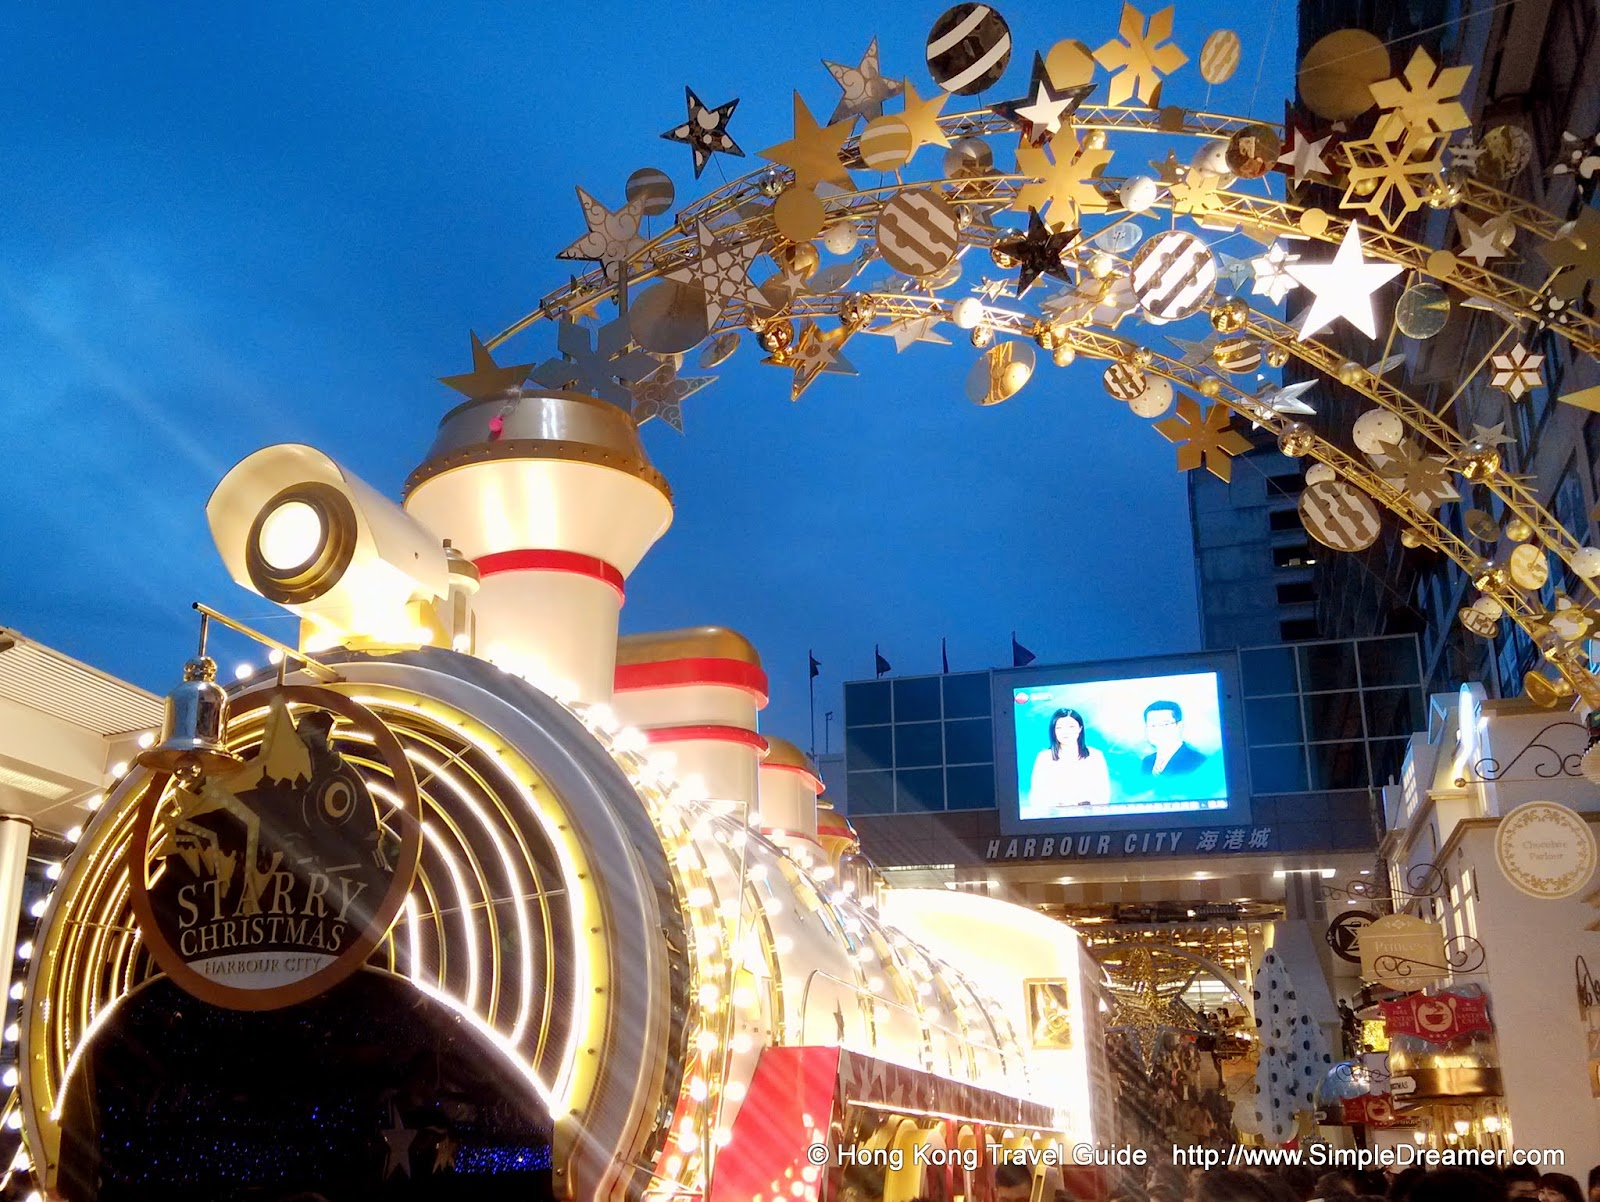 event harbour city starry christmas 2014 location ocean terminal forecourt harbour city address 3 27 canton road tsim sha tsui kowloon - Starry Christmas